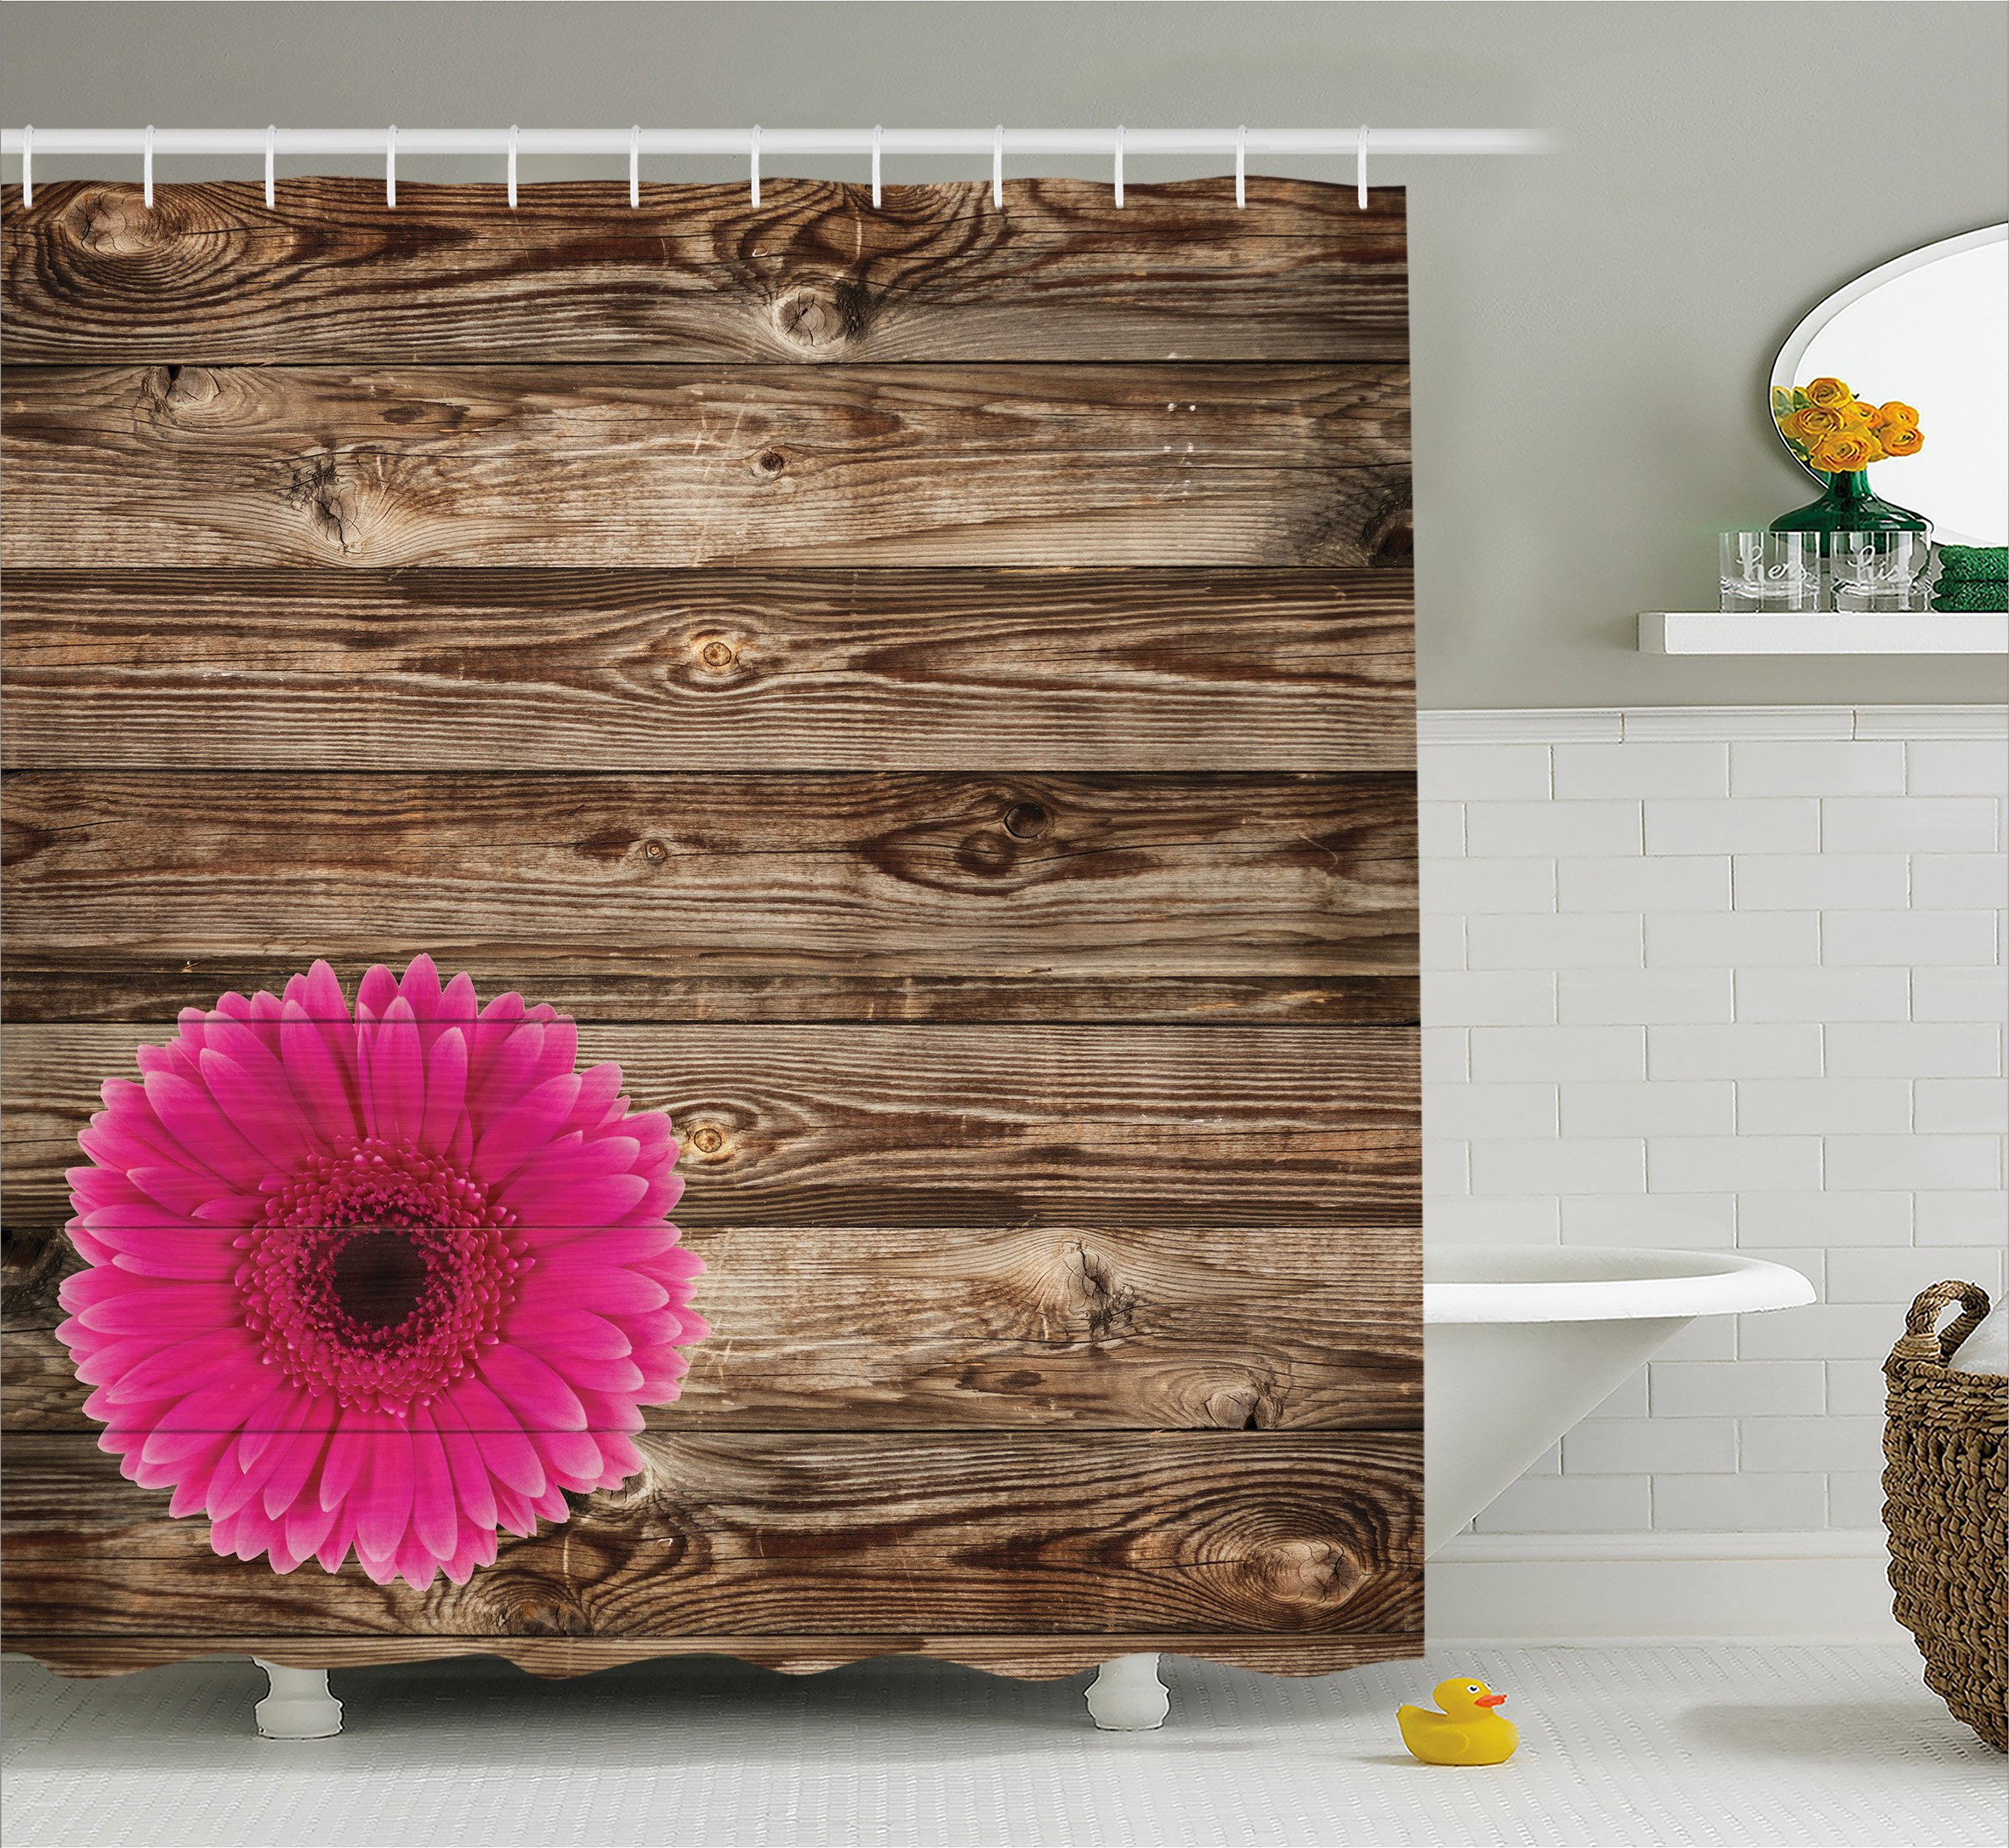 Ambesonne Rustic Home Decor Shower Curtain Set, Pink Daisy Blossom on Vintage Wood Wall Picture Gerbera Flower Farm Country Style, Bathroom Accessories Collection, Polyester Fabric,Brown Fuschia